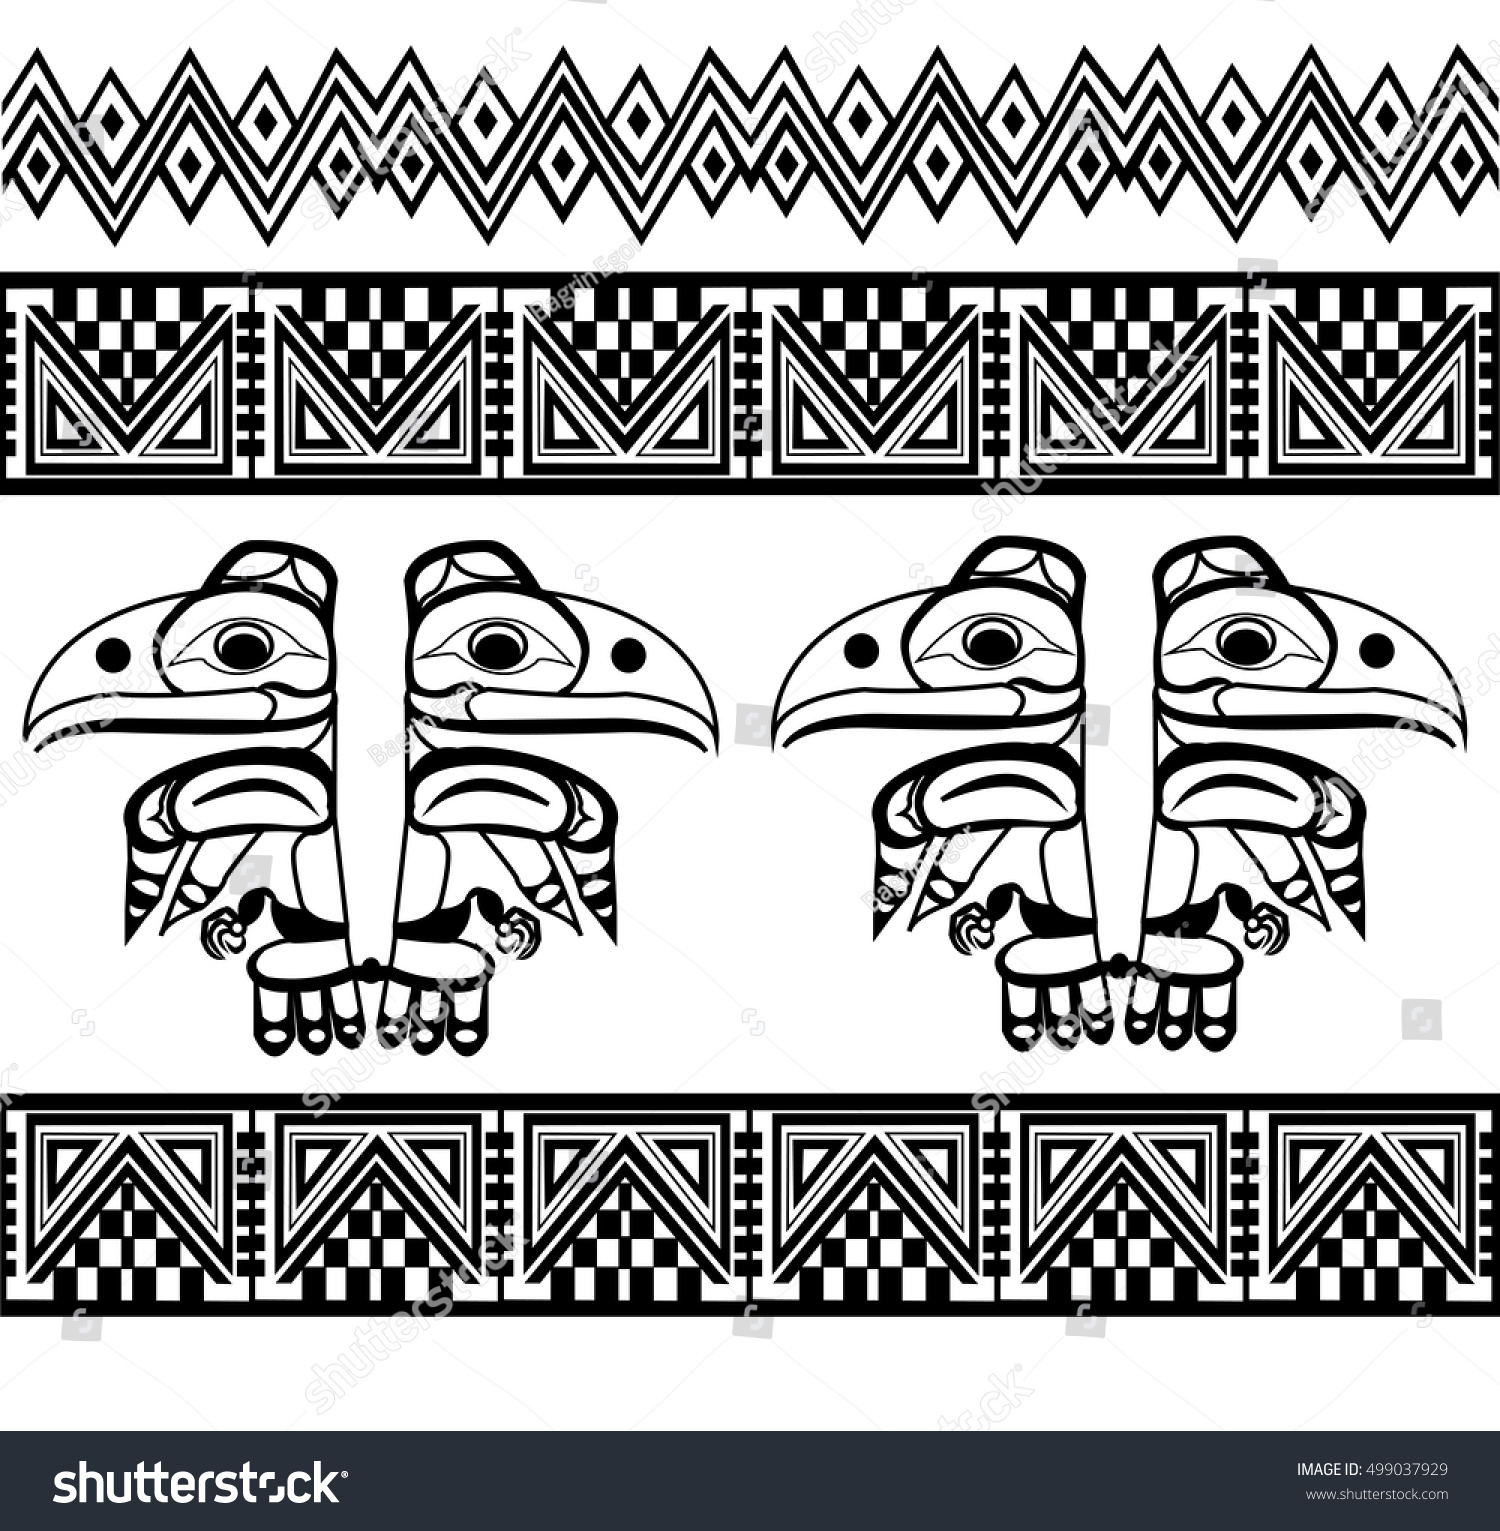 Background geometric mexican patterns seamless vector zigzag maya - Ethnic Patterns Of Native Americans The Aztec Inca Maya Alaska Indians